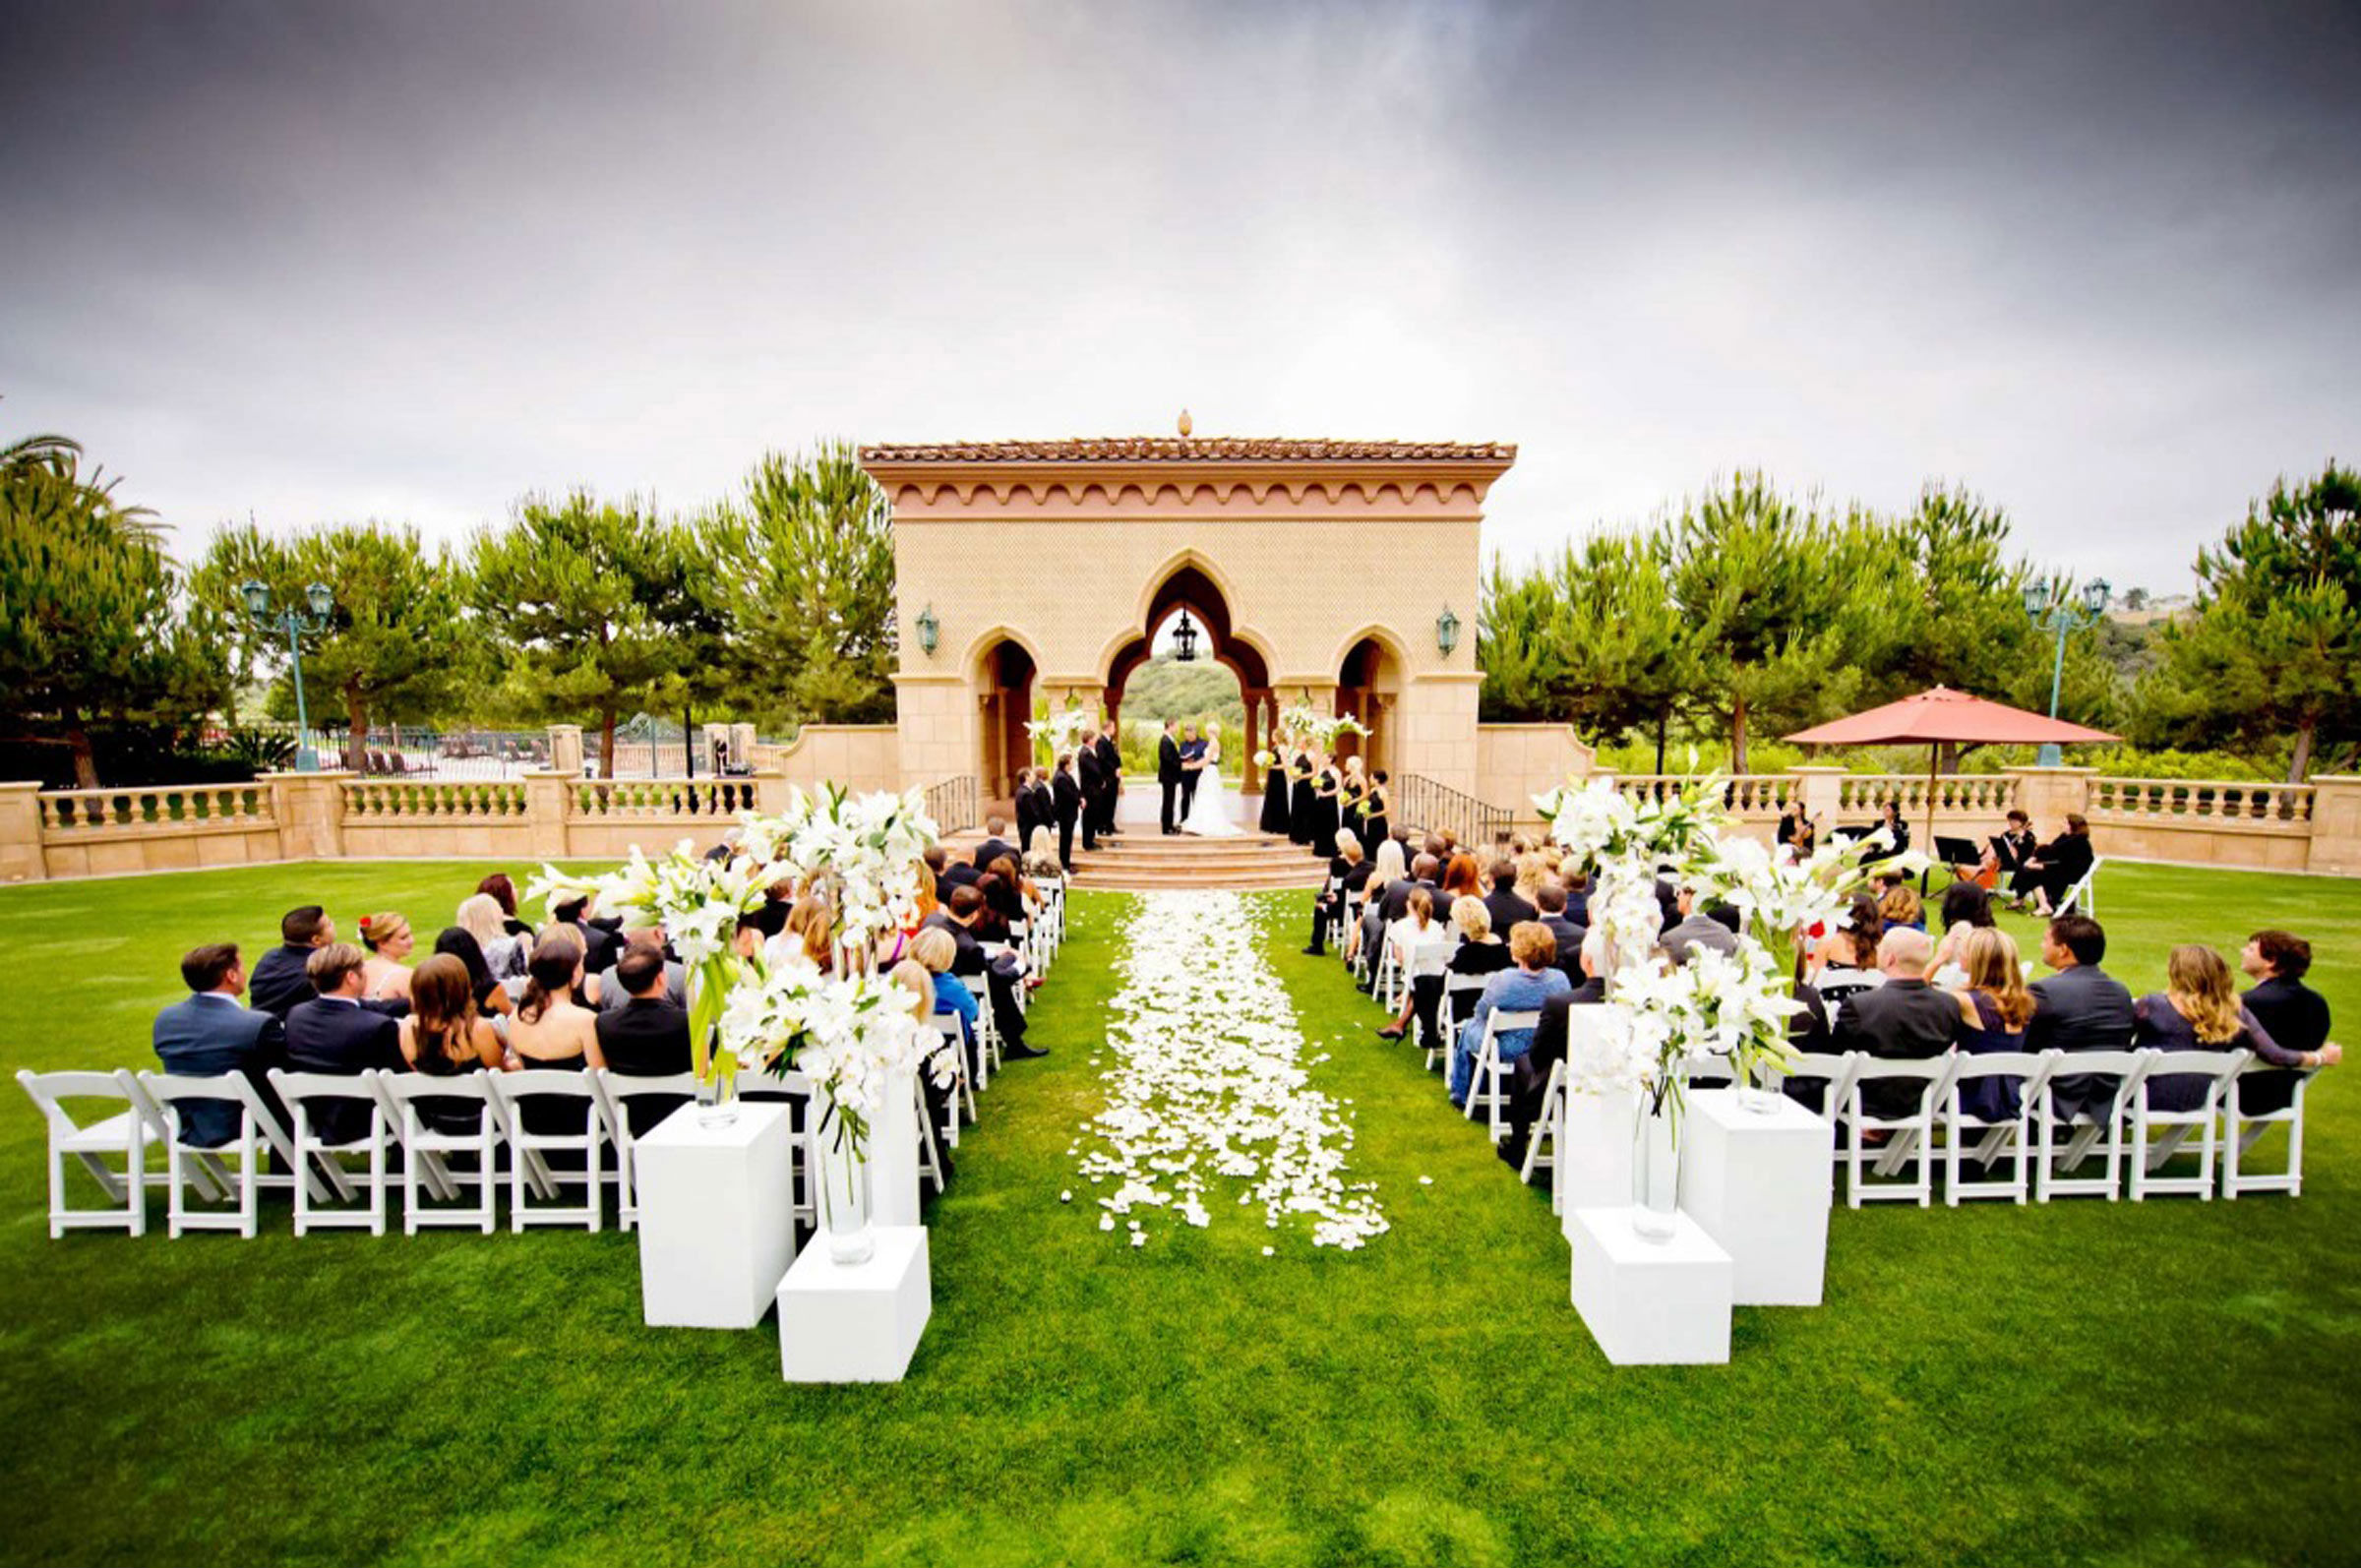 North County San Diego Wedding Venues 2017 Master List